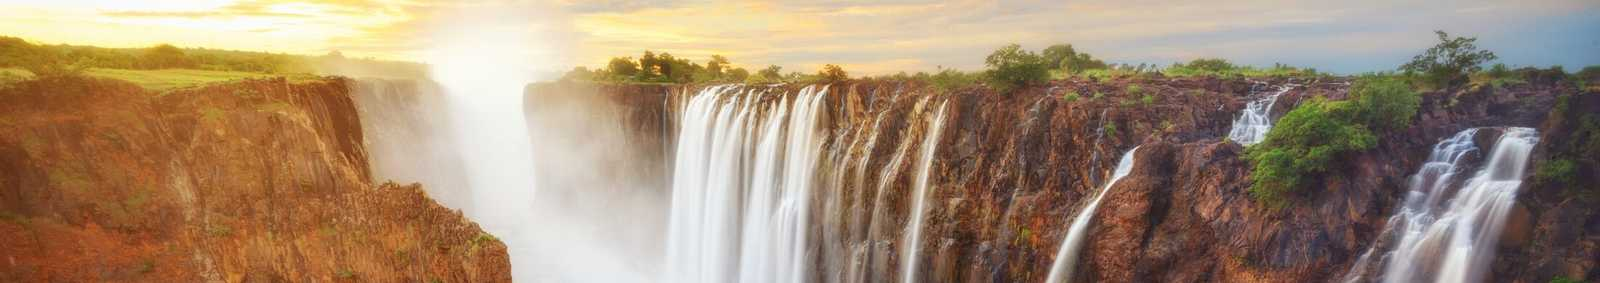 waterfall, Africa